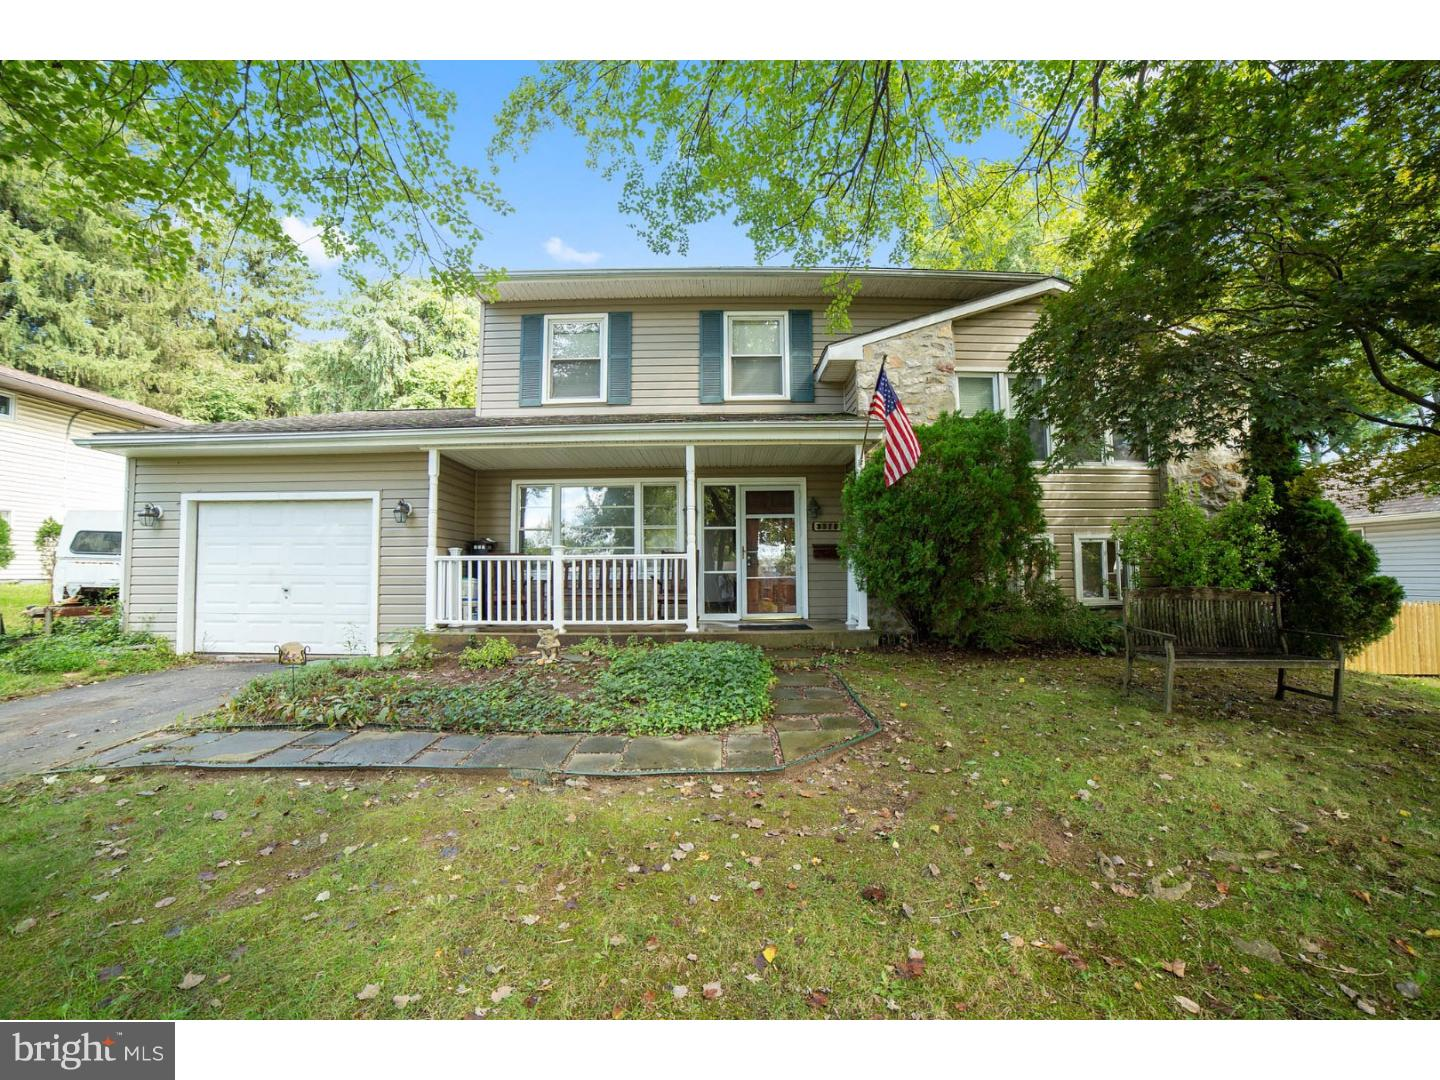 3315 WHITEHALL DRIVE, WILLOW GROVE, PA 19090